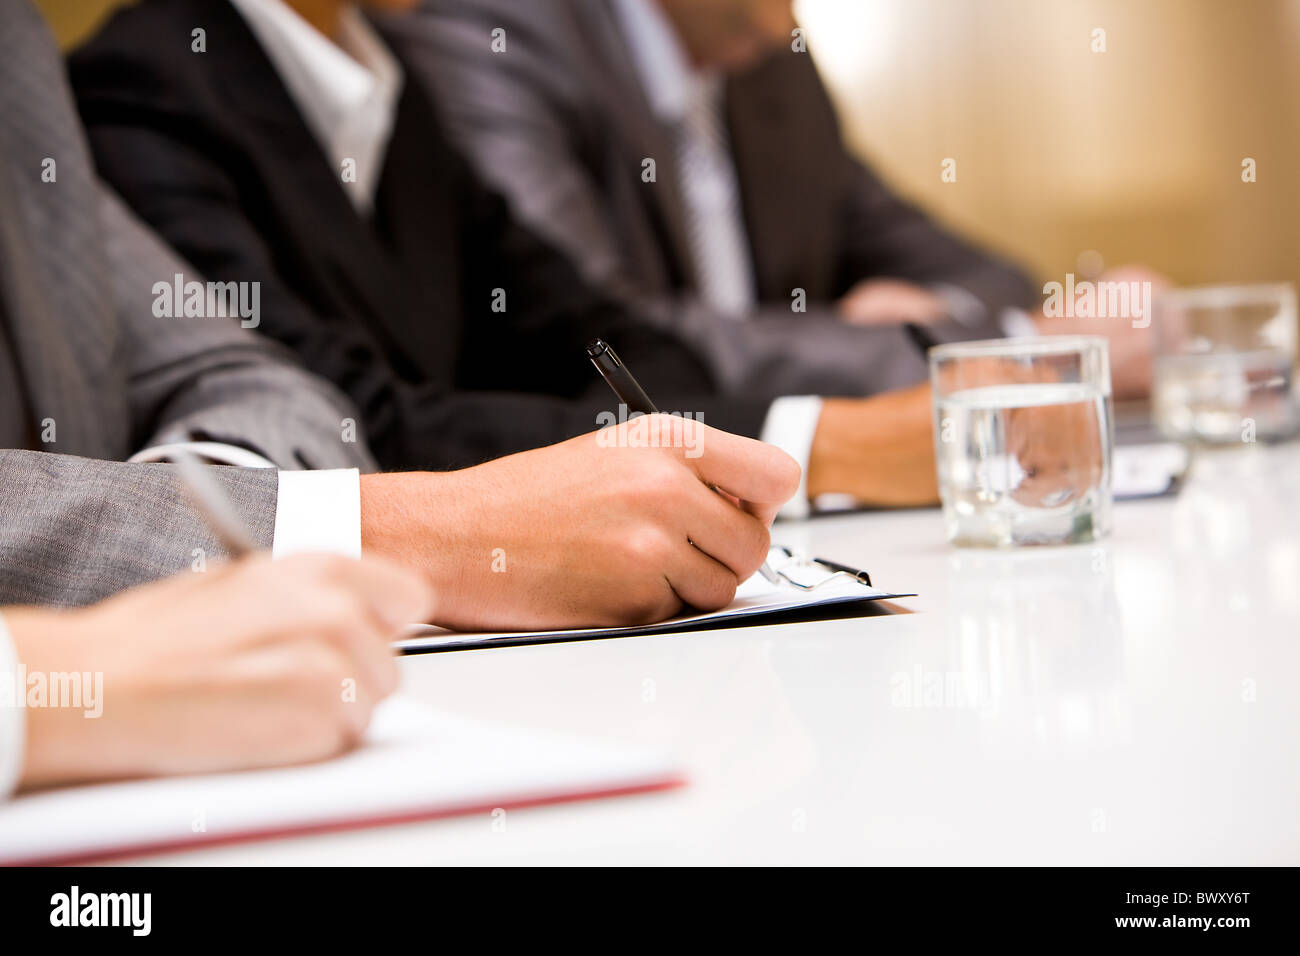 Close-up of hands with pens making notes during conference - Stock Image